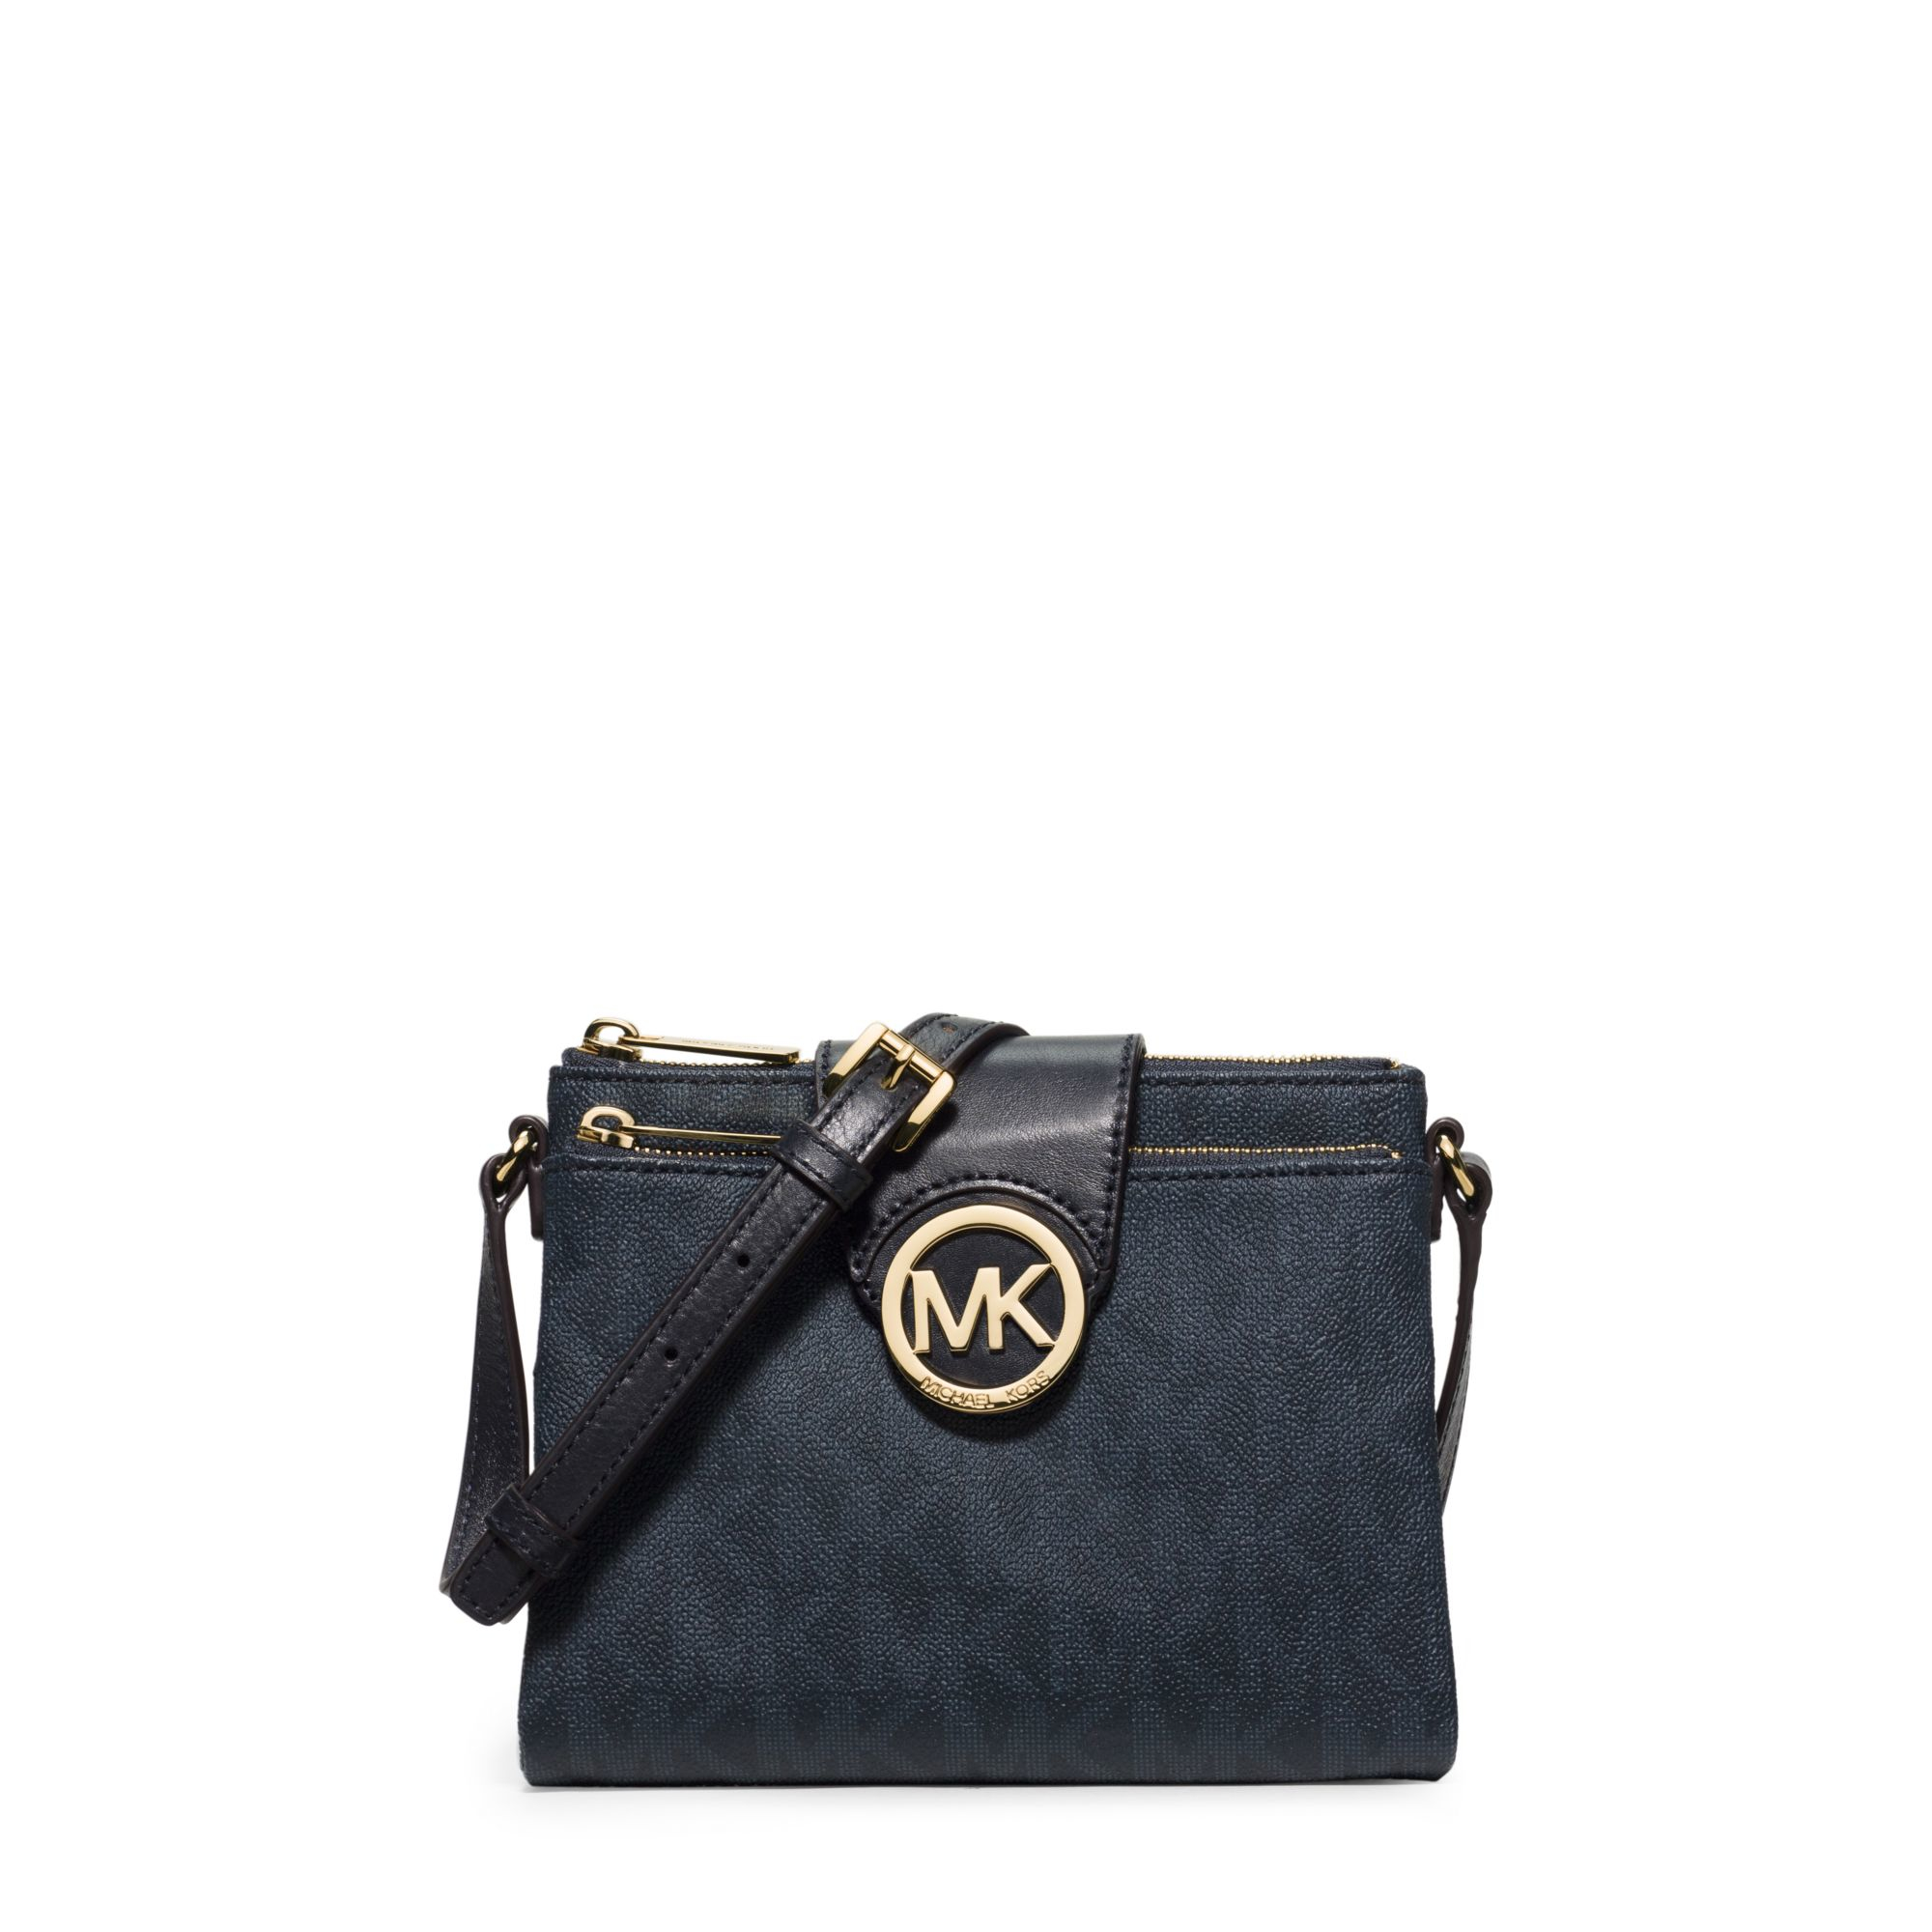 michael kors fulton small saffiano leather crossbody in blue lyst. Black Bedroom Furniture Sets. Home Design Ideas